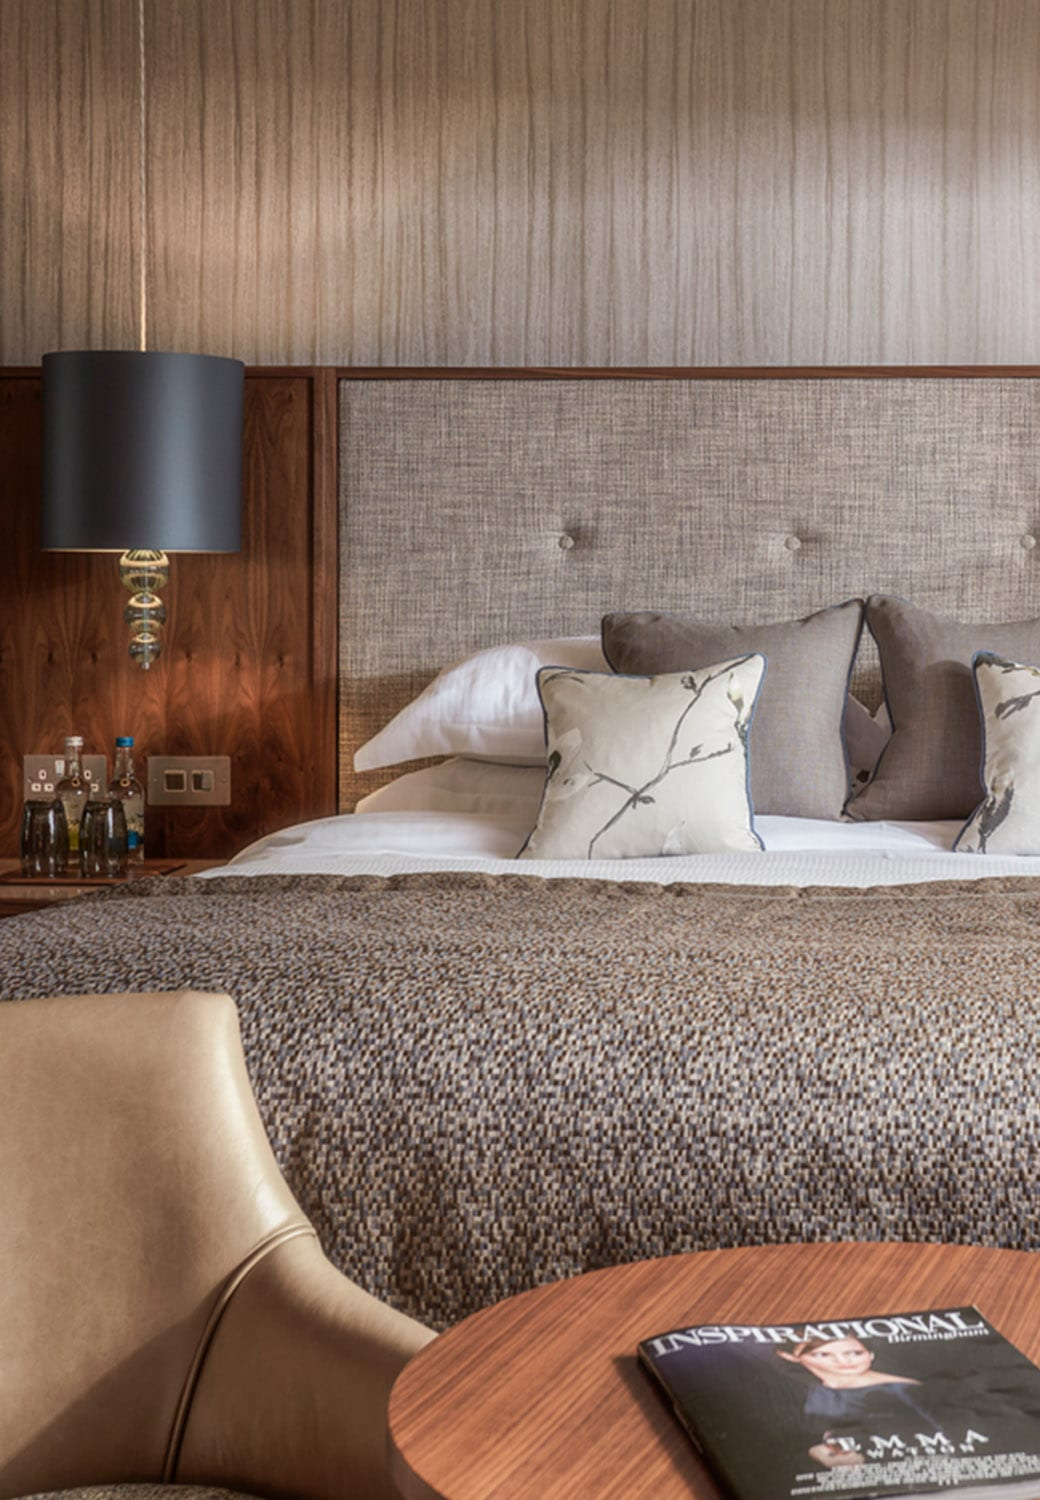 Luxury Hotel Rooms: Mallory Court Hotel And Spa